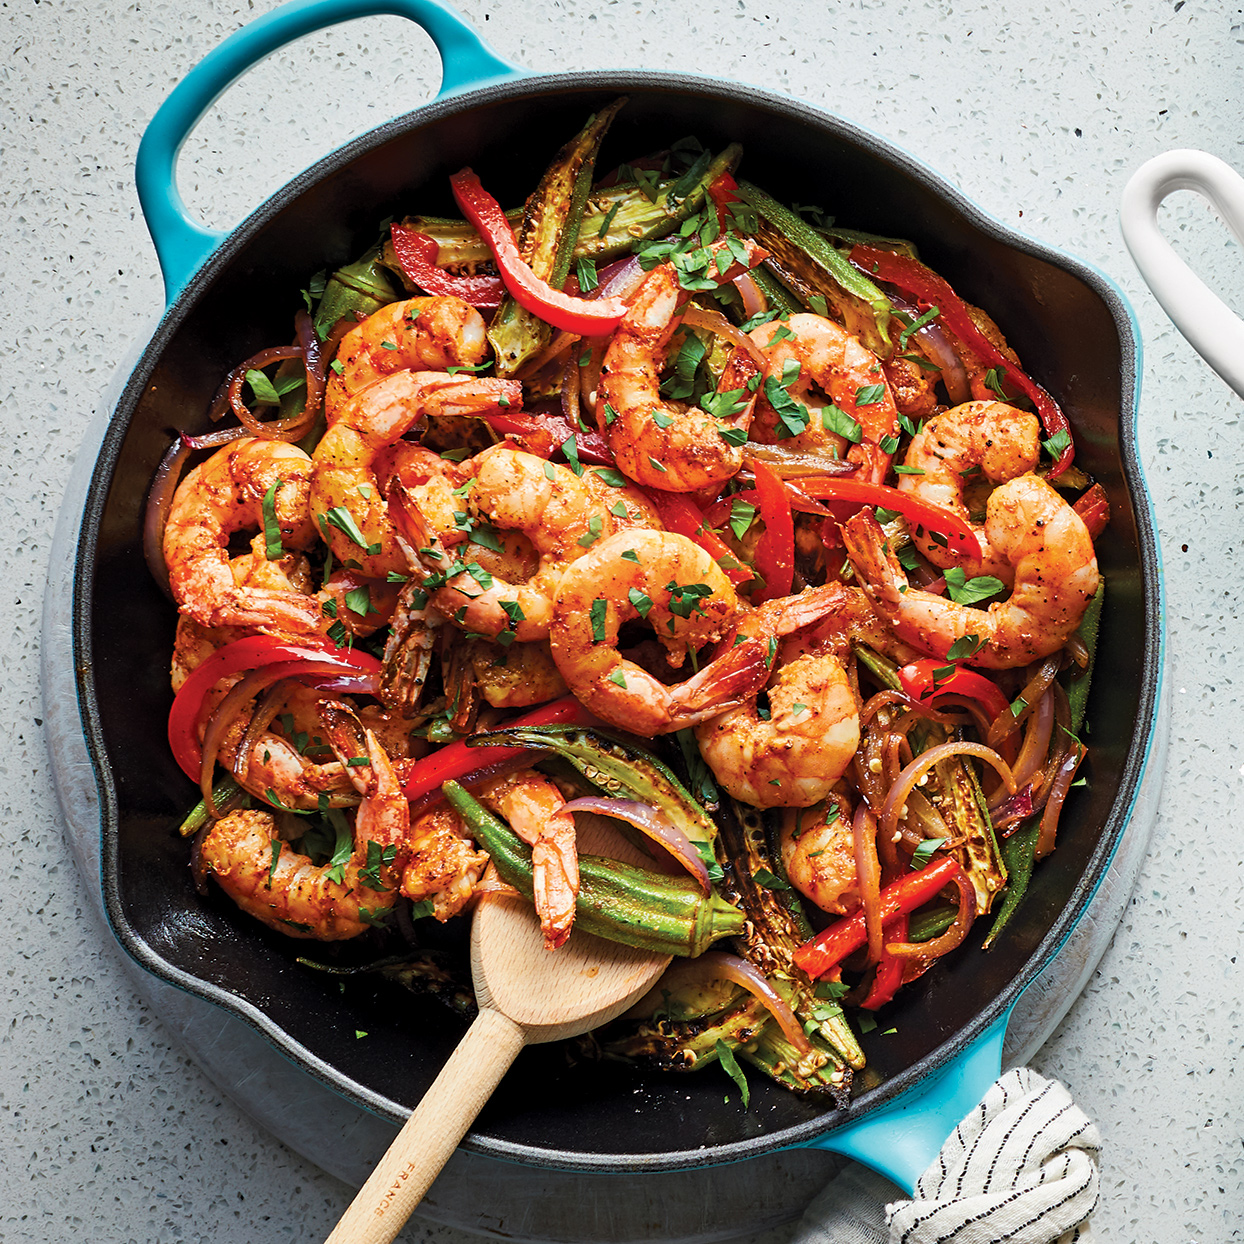 Serve spicy blackened shrimp and tender vegetables over aromatic basmati rice for an easy skillet supper. Use precooked microwave rice so you don't have to mess up another pan. This one-pan dinner is perfect for company, but easy enough to make on a weeknight. Source: 400 Calorie Recipes